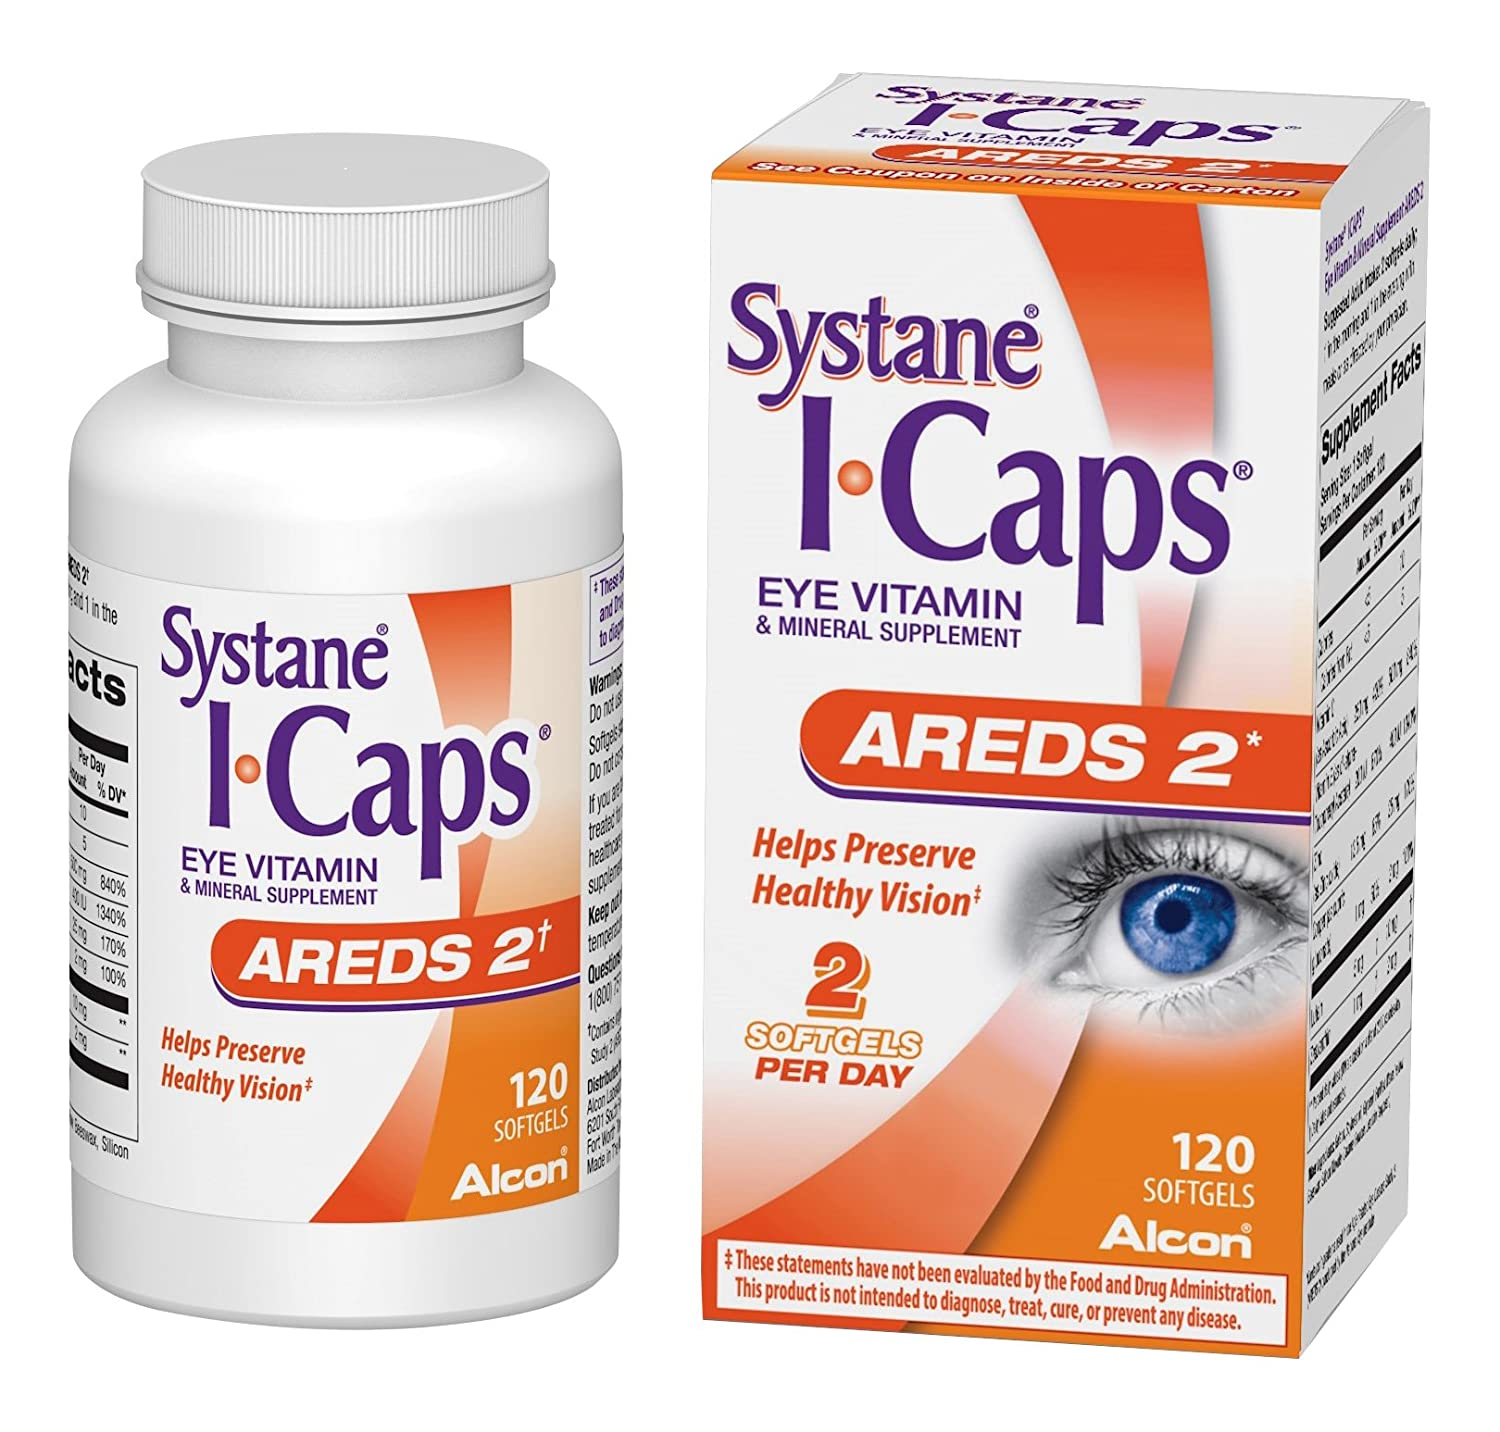 Systane ICaps Eye Vitamin Mineral Supplement, AREDS 2 Formula, 120 Softgels